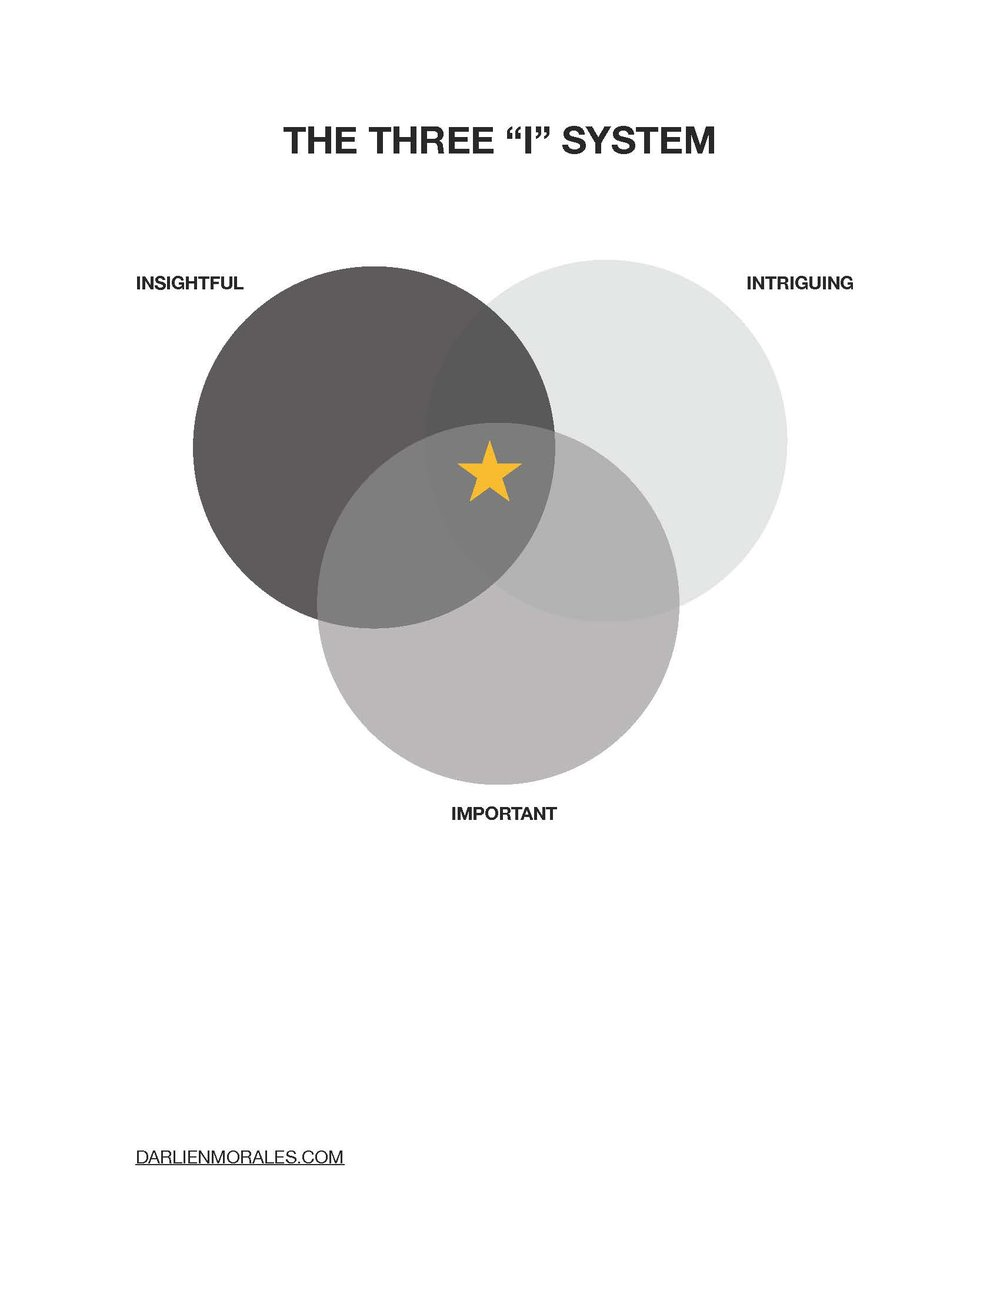 The golden star is where the ideal shot will be.